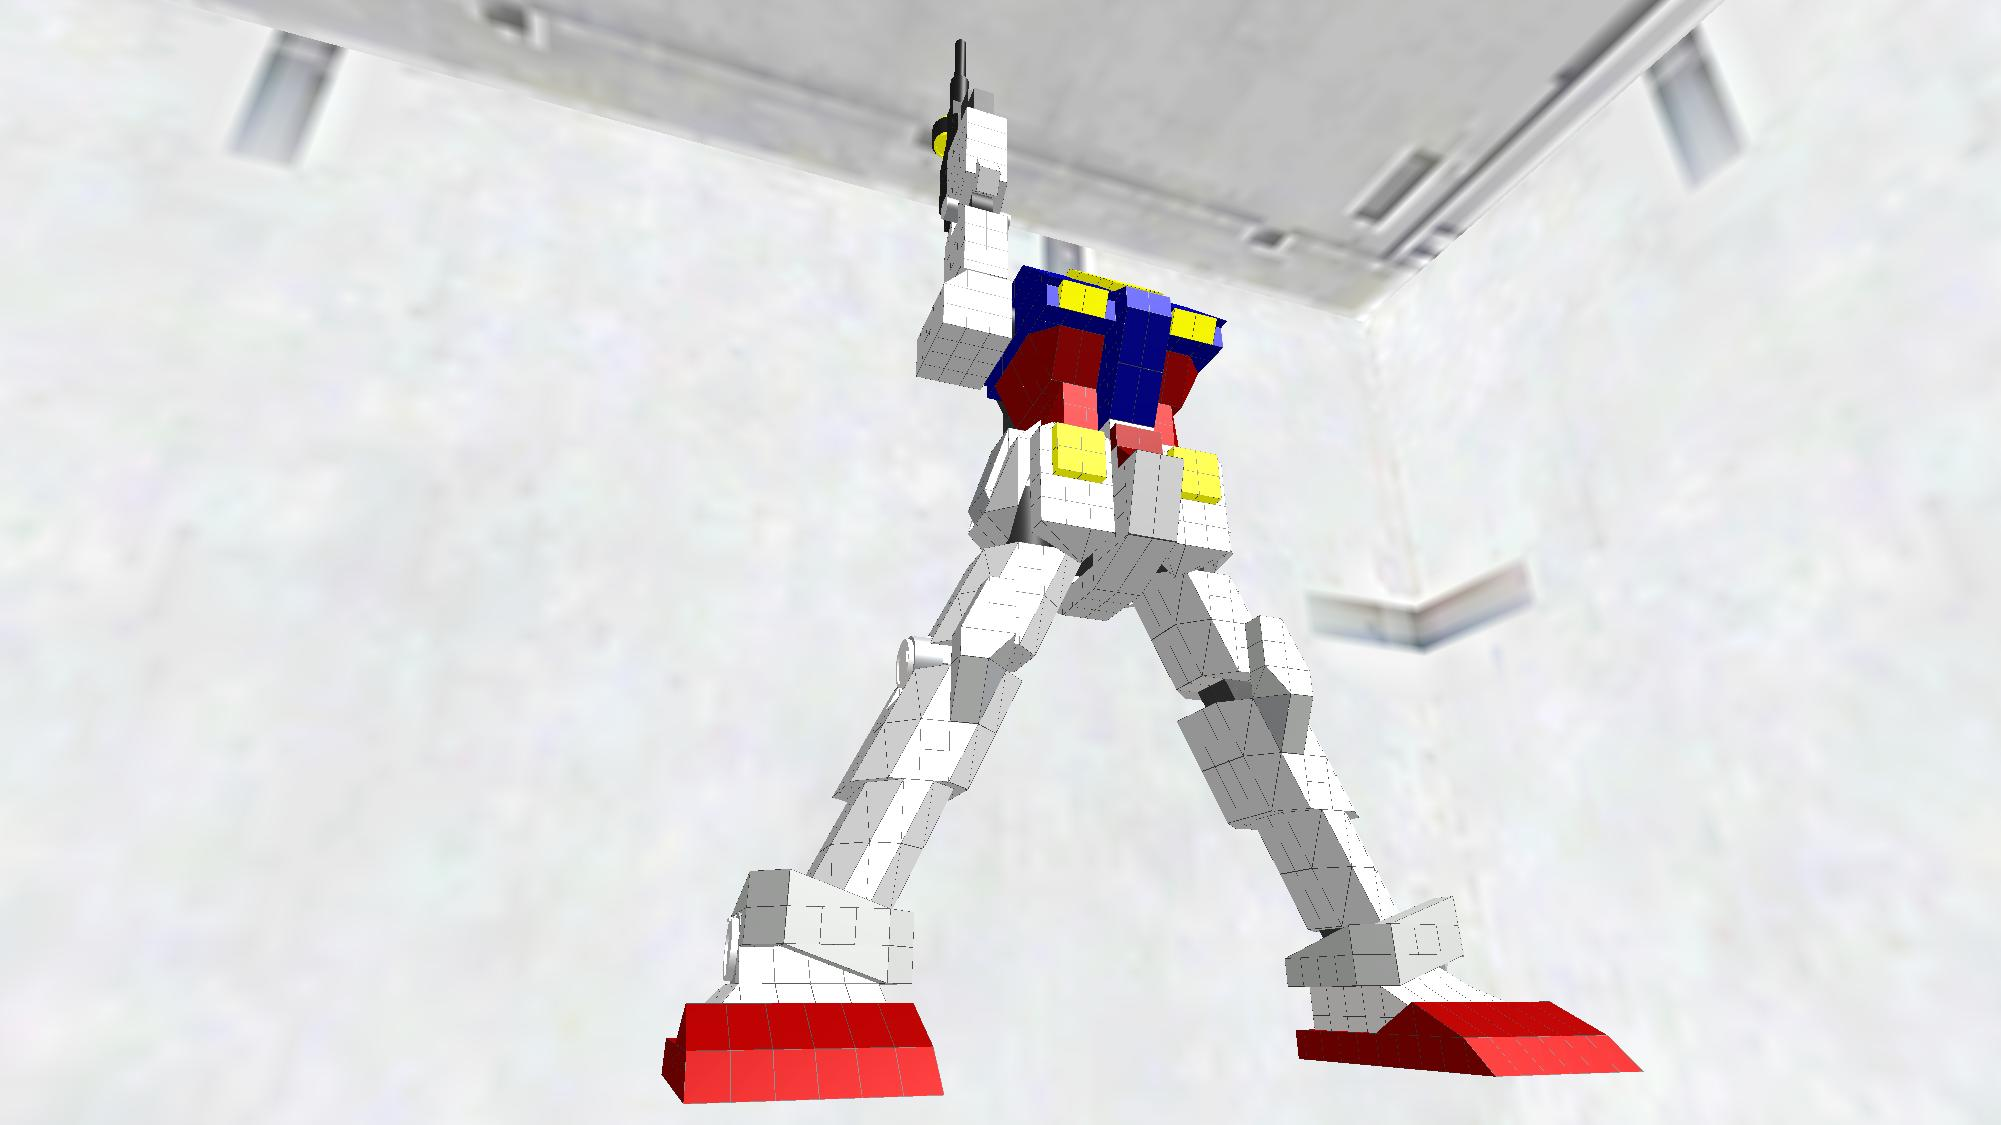 RX-78-02 the last shooting